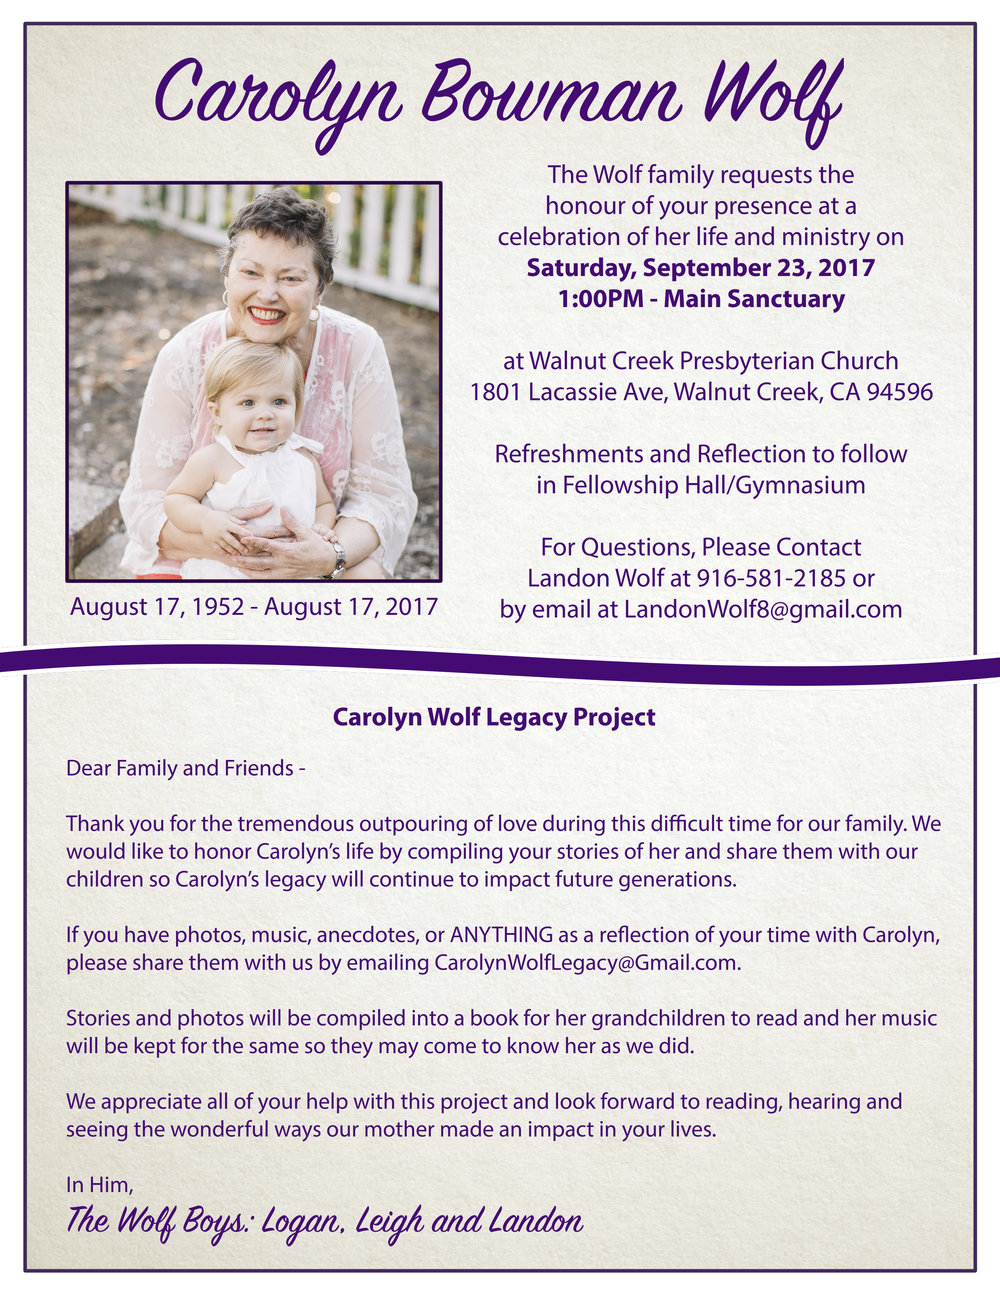 Carolyn-Memorial-Announcement.jpg